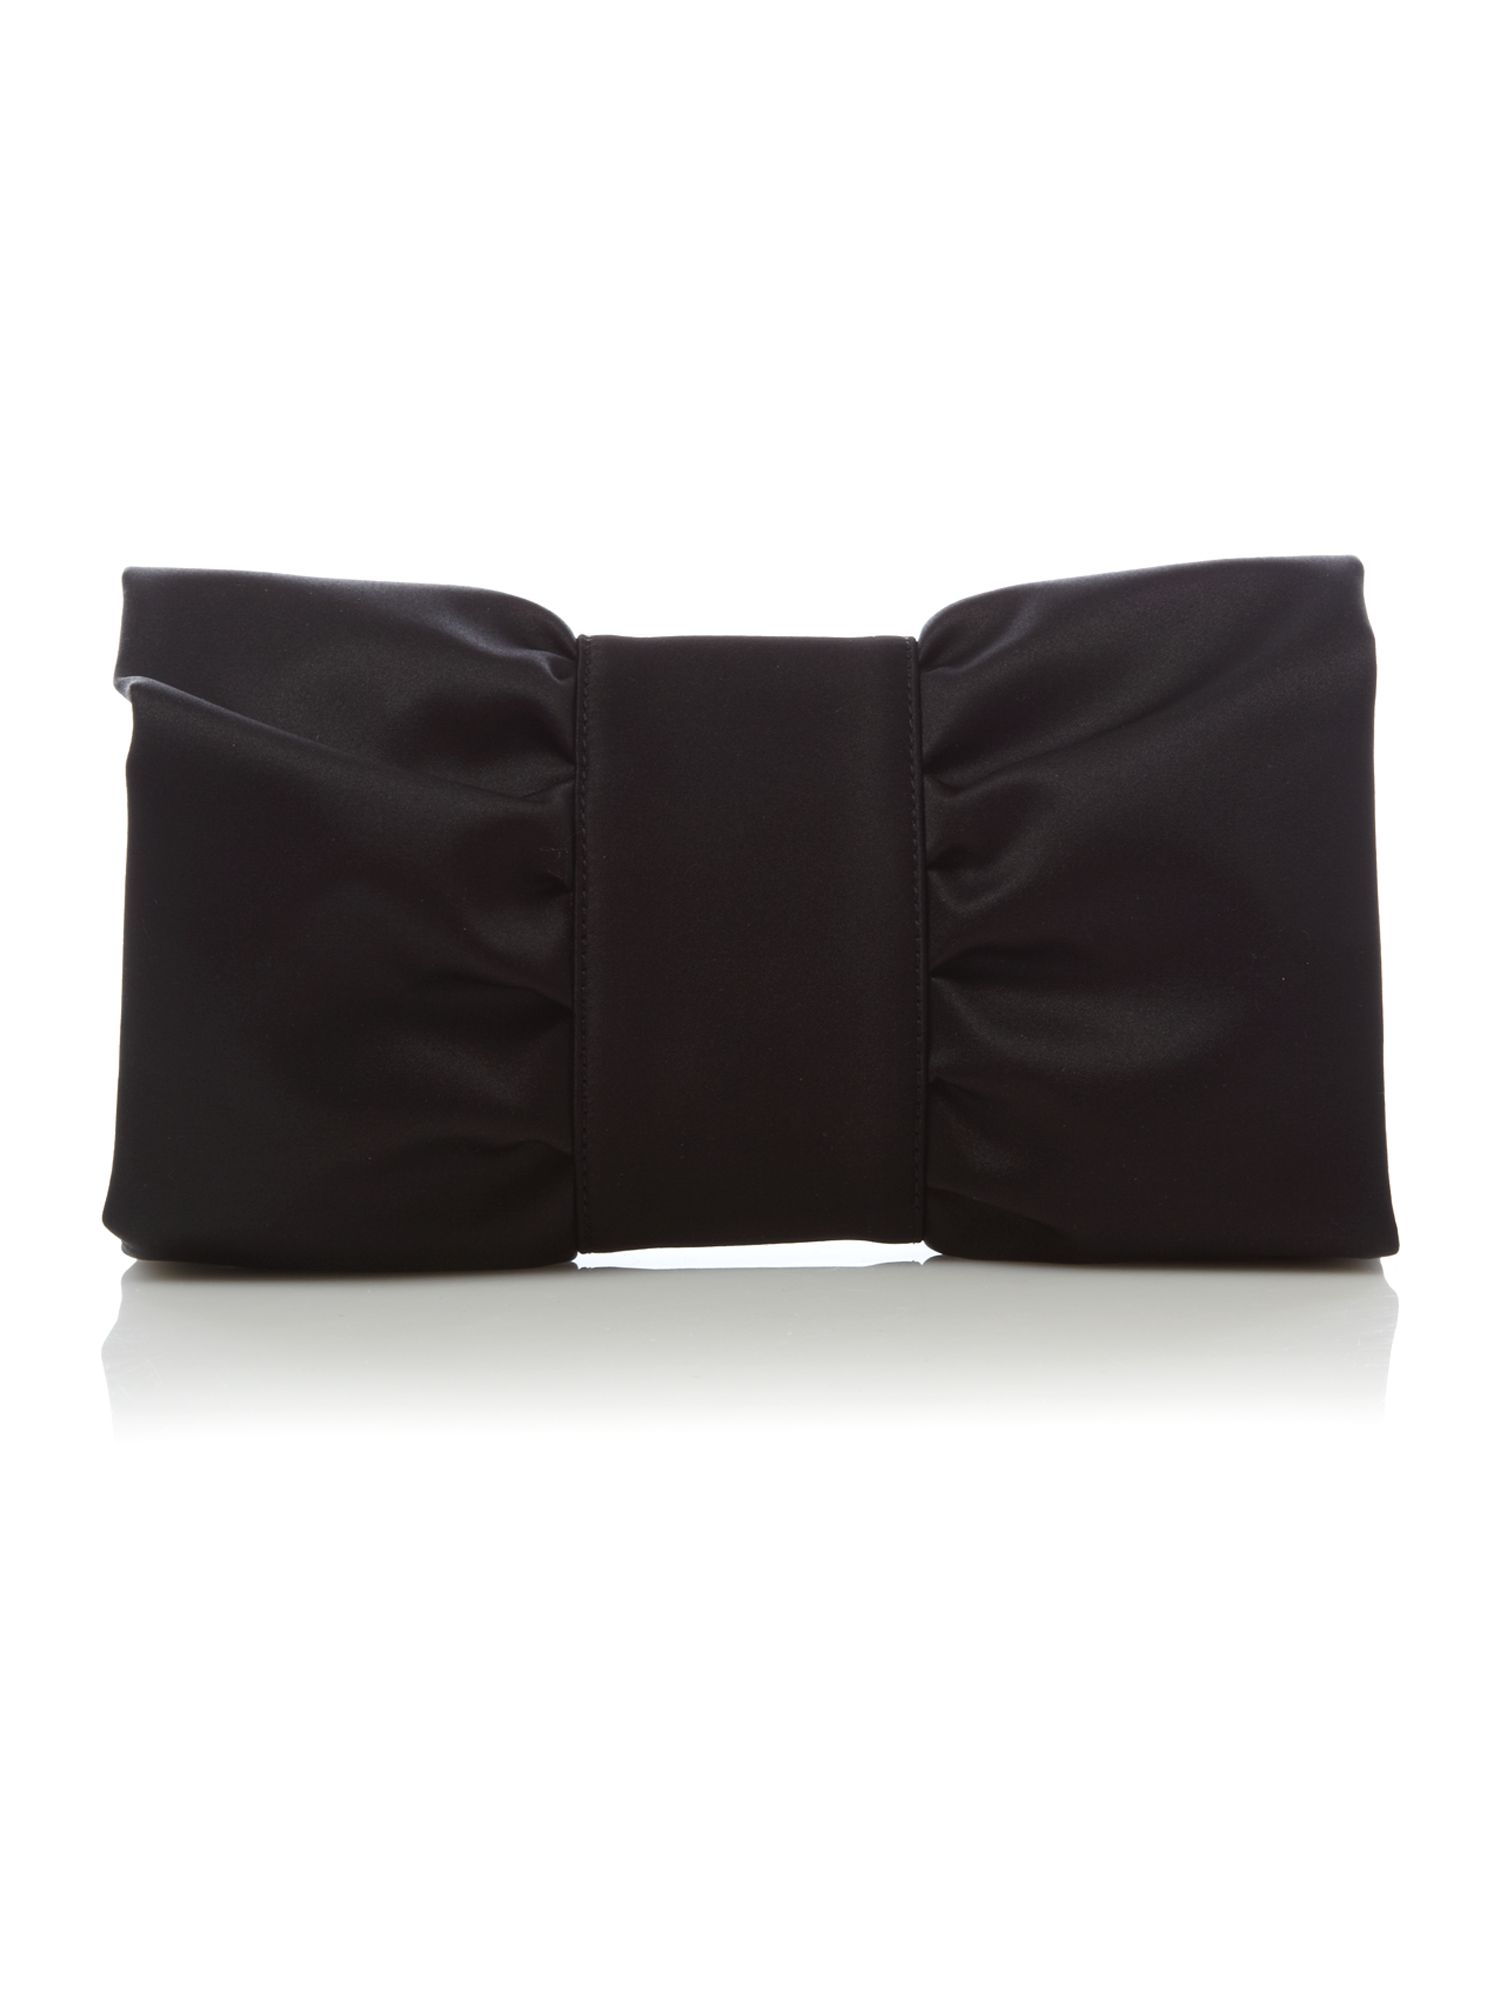 Sep 19,  · Clutch Black Big Girly Bow HandBags Bag posts; Trader Feedback. 0 Clutch Big Bag HandBags Girly Bow Black 0 0. Bow HandBags Big Bag Black Clutch Girly Total Rating N/A. Posted September 25, Thanks all. Sounds like an ability to try and abuse. .